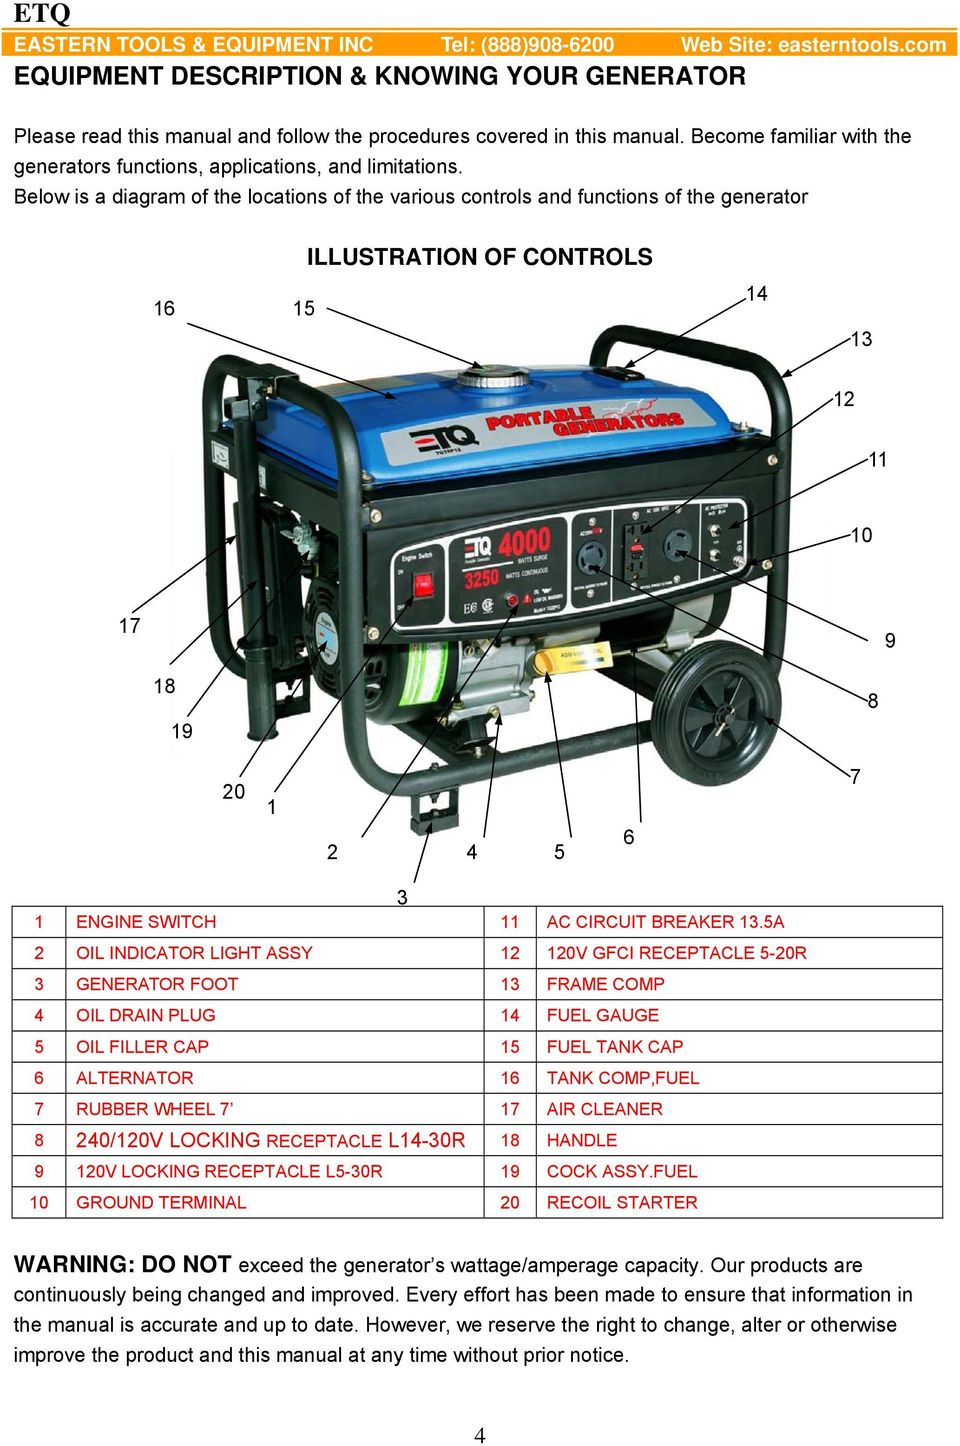 Below is a diagram of the locations of the various controls and functions of the generator ILLUSTRATION OF CONTROLS 16 15 14 13 12 11 10 17 9 18 19 8 20 1 2 4 5 6 7 3 1 ENGINE SWITCH 11 AC CIRCUIT